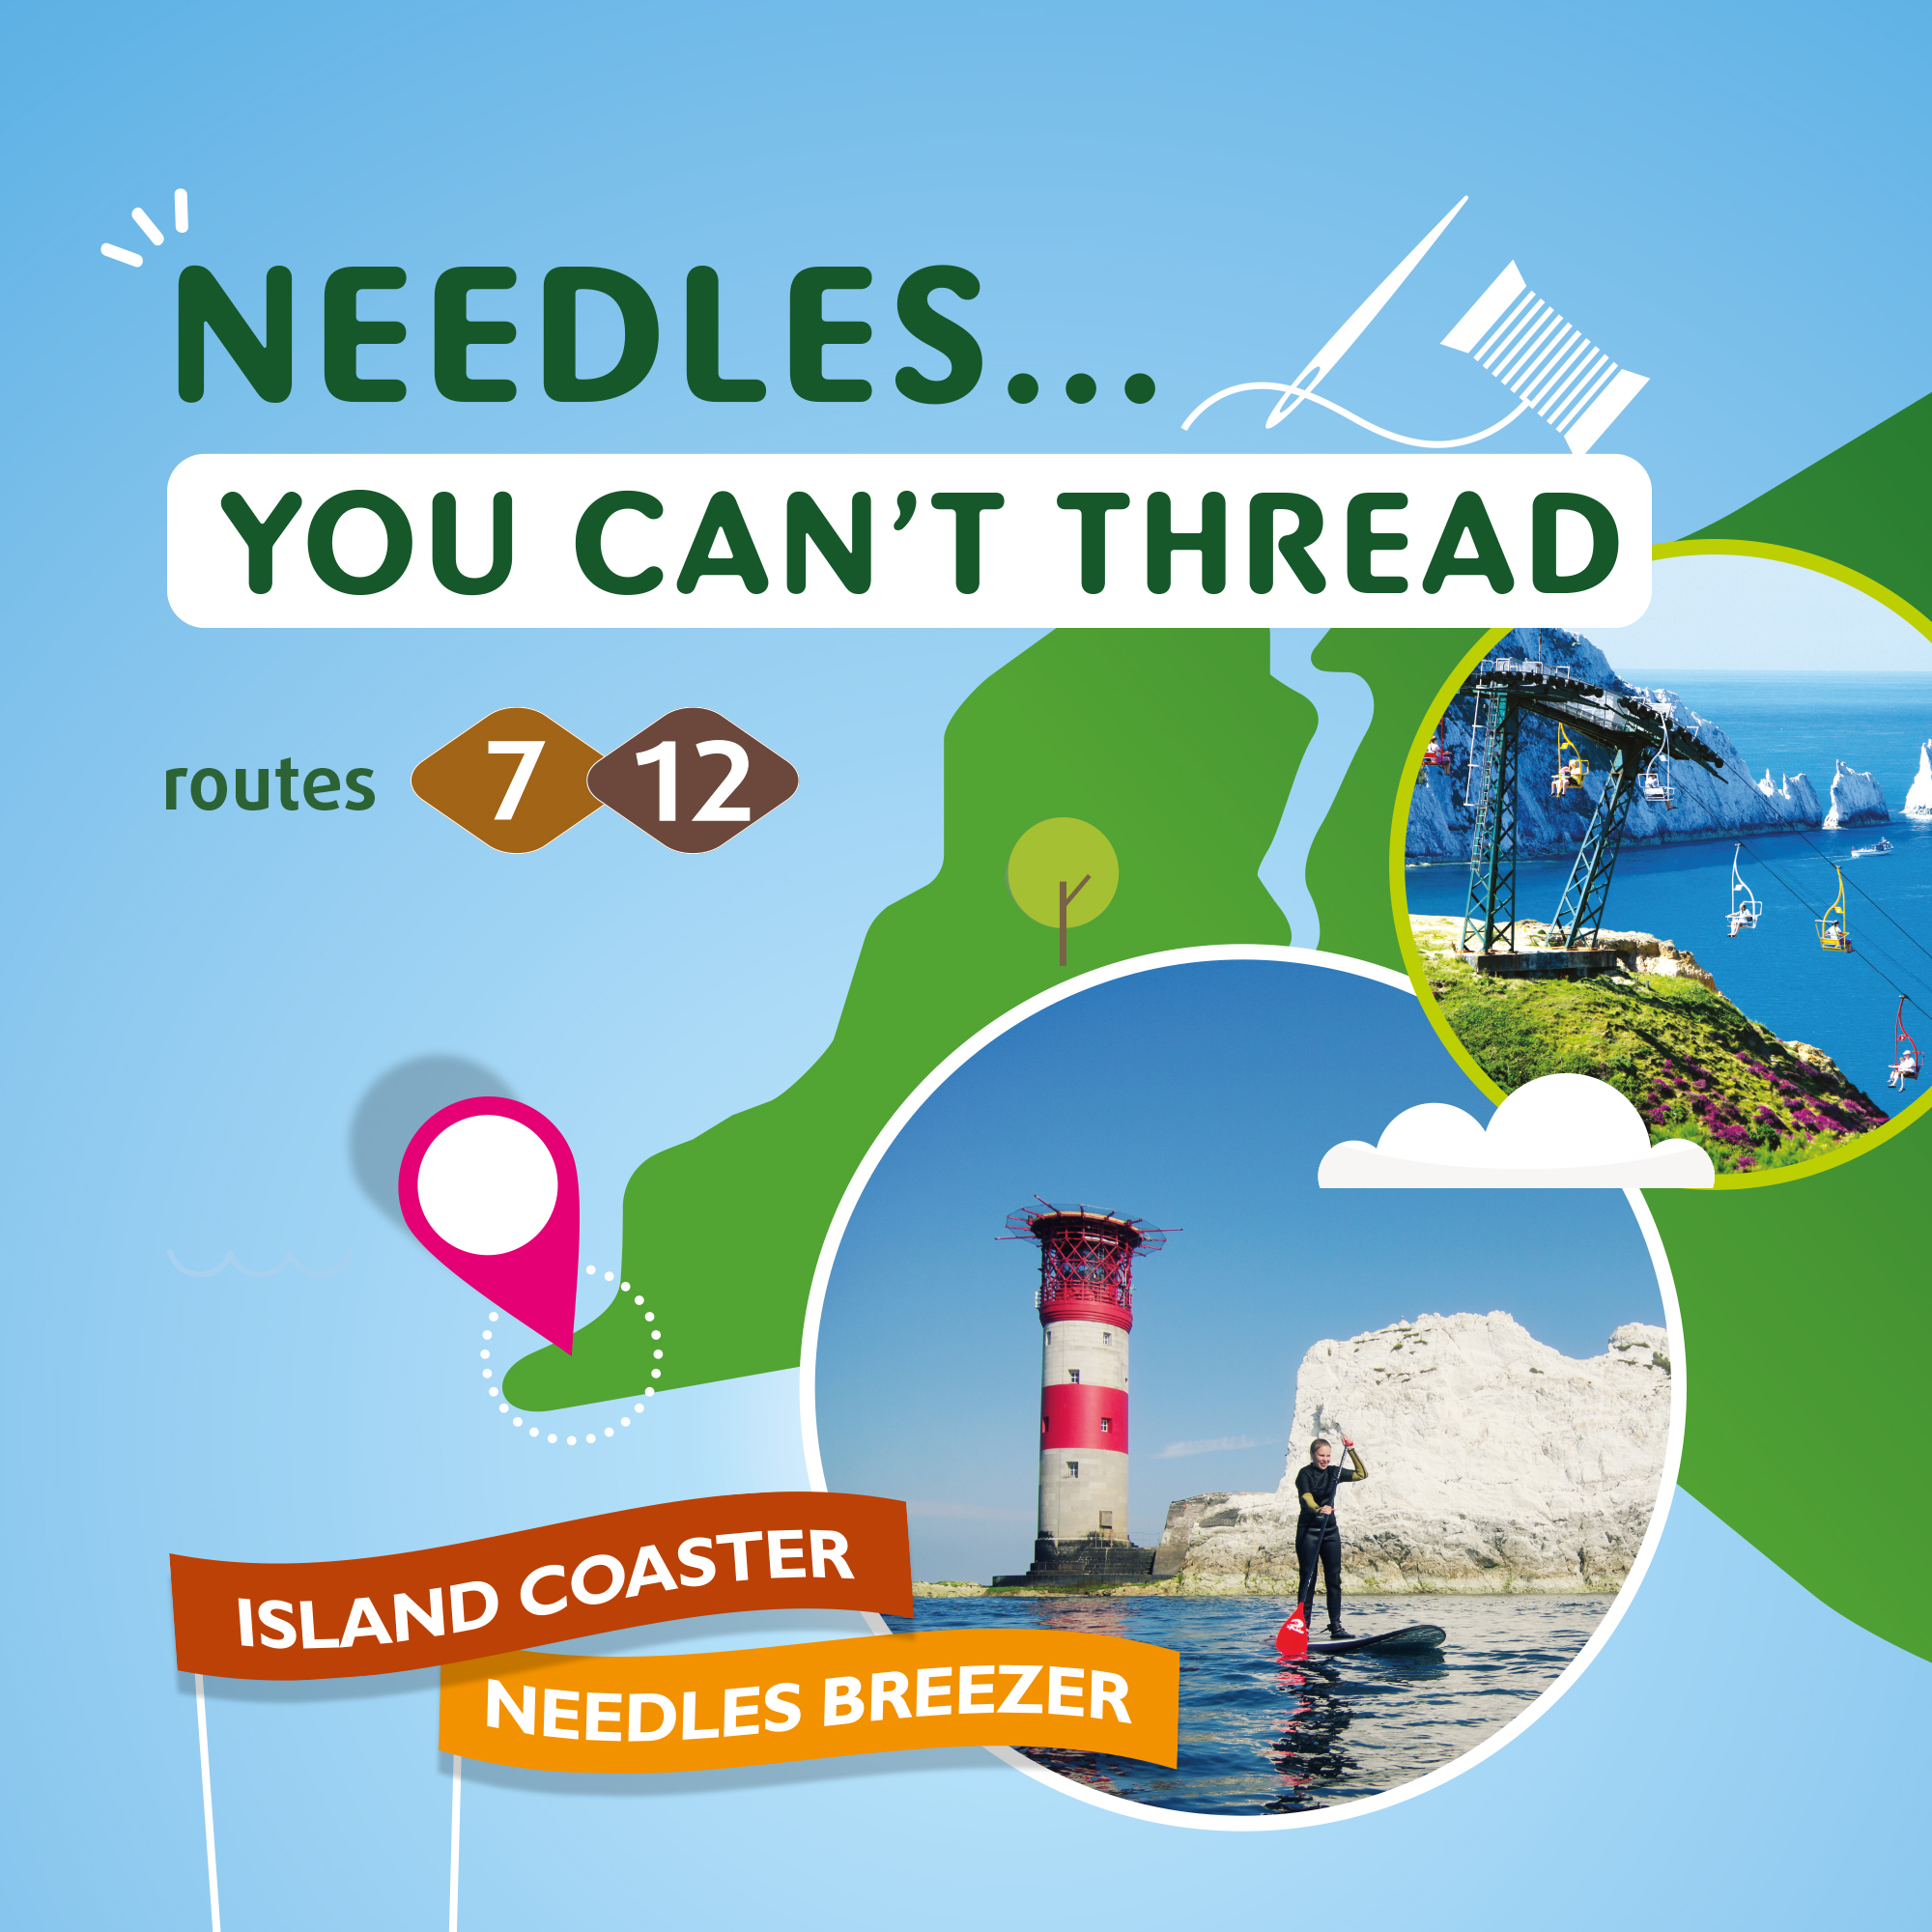 Illustration of needles you can't thread